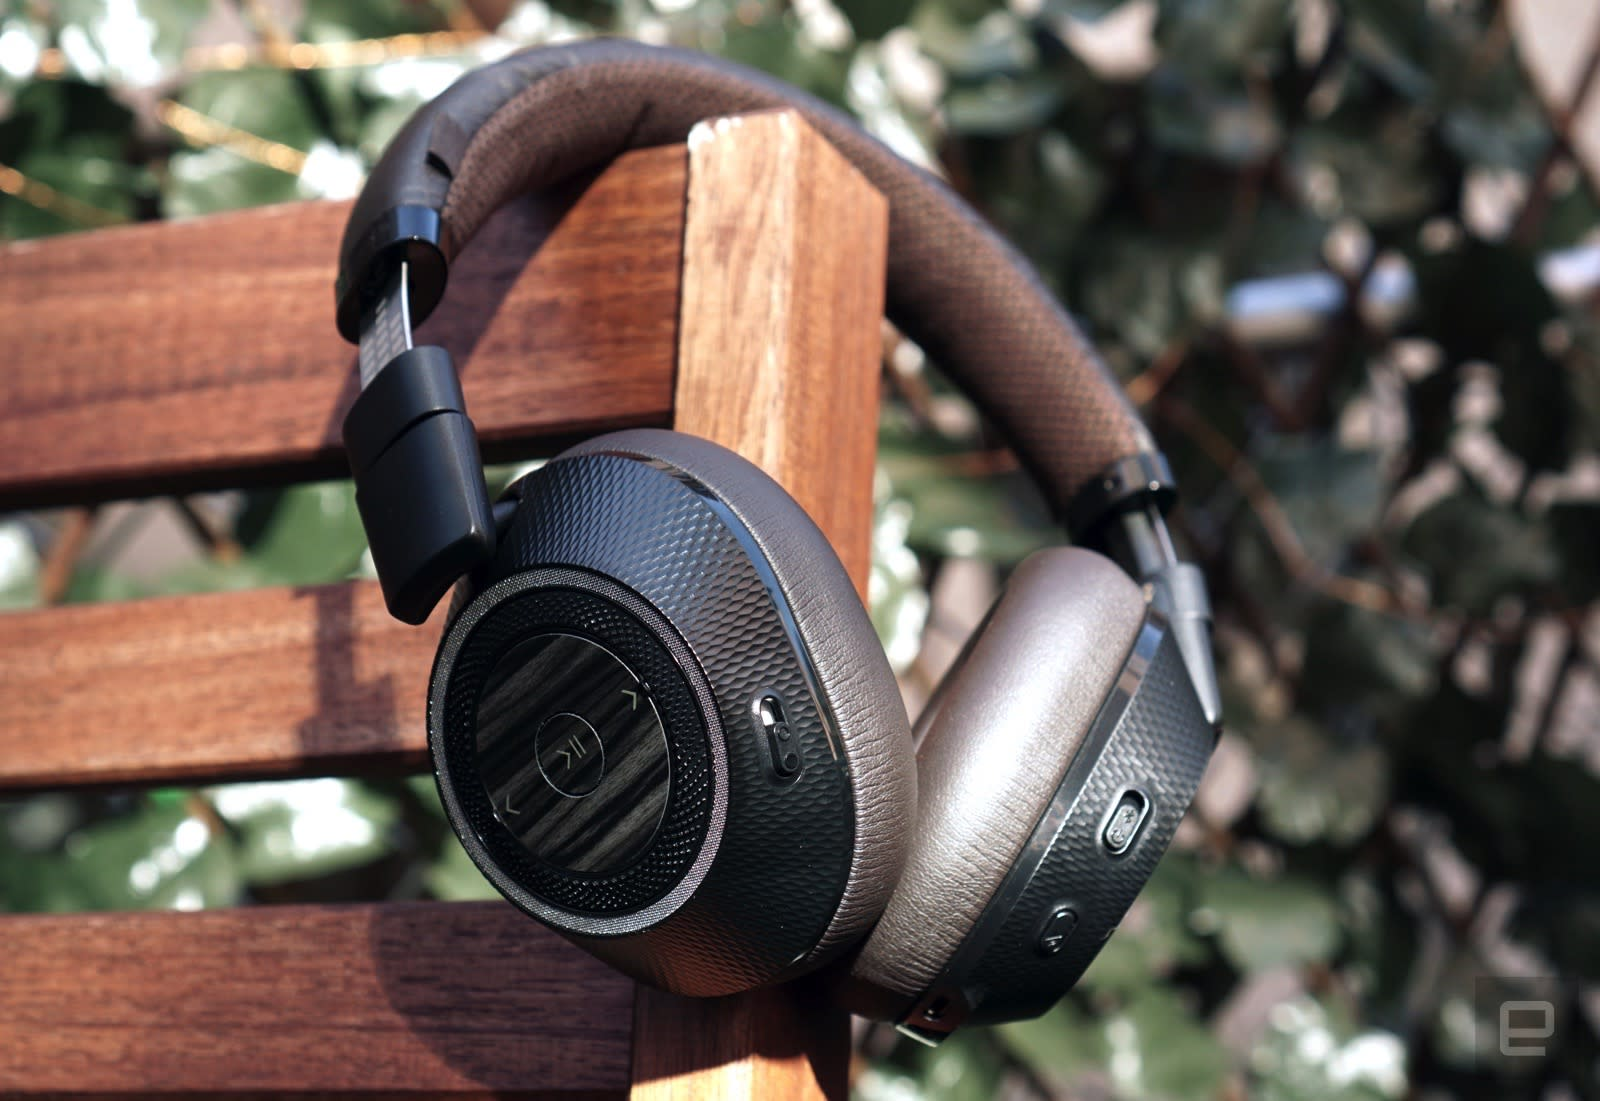 407d431f5b4 Plantronics' new wireless cans deliver noise-canceling for $200